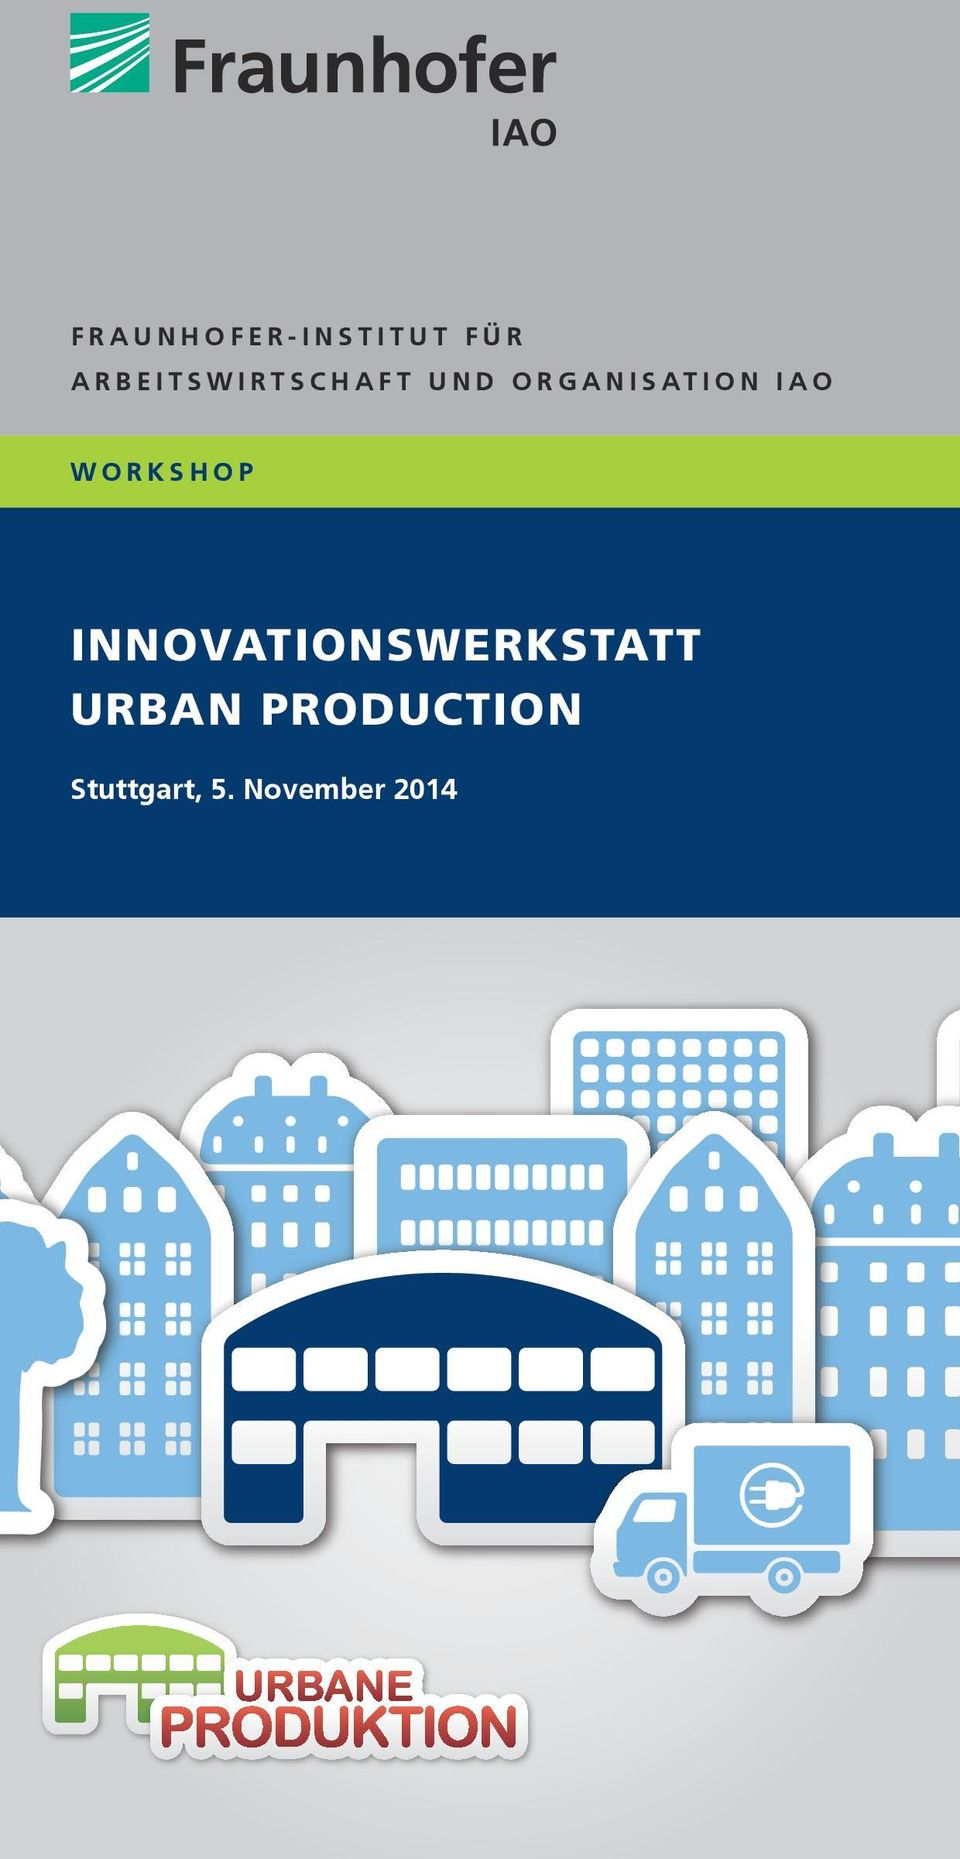 iao Workshop Innovationswerkstatt